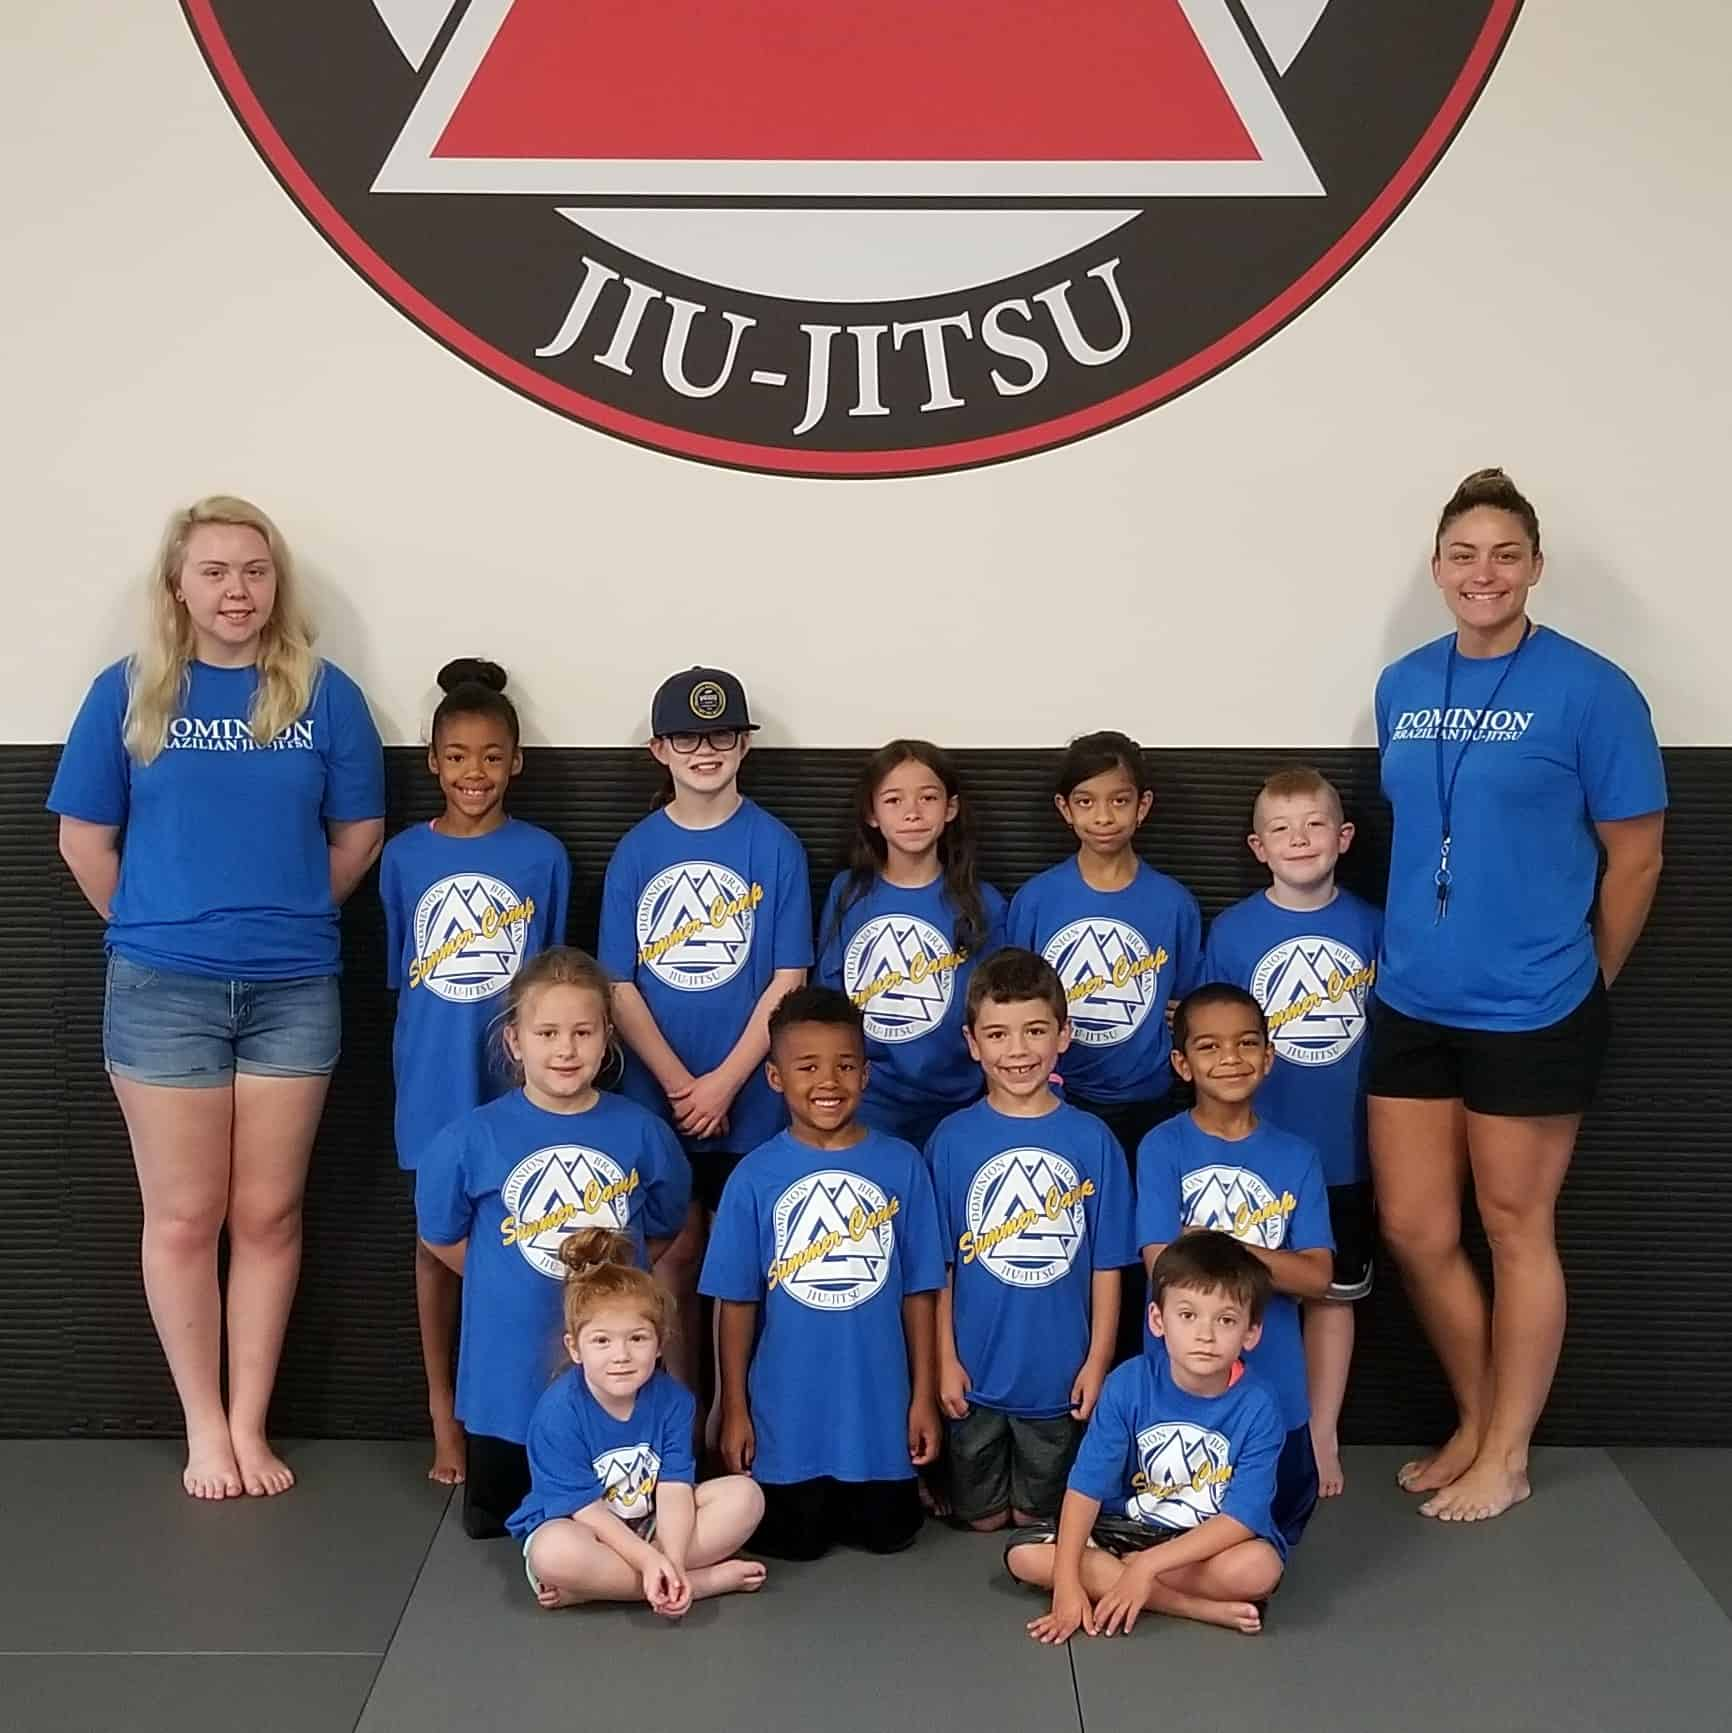 Dominion Kids Martial Arts Summer Camp